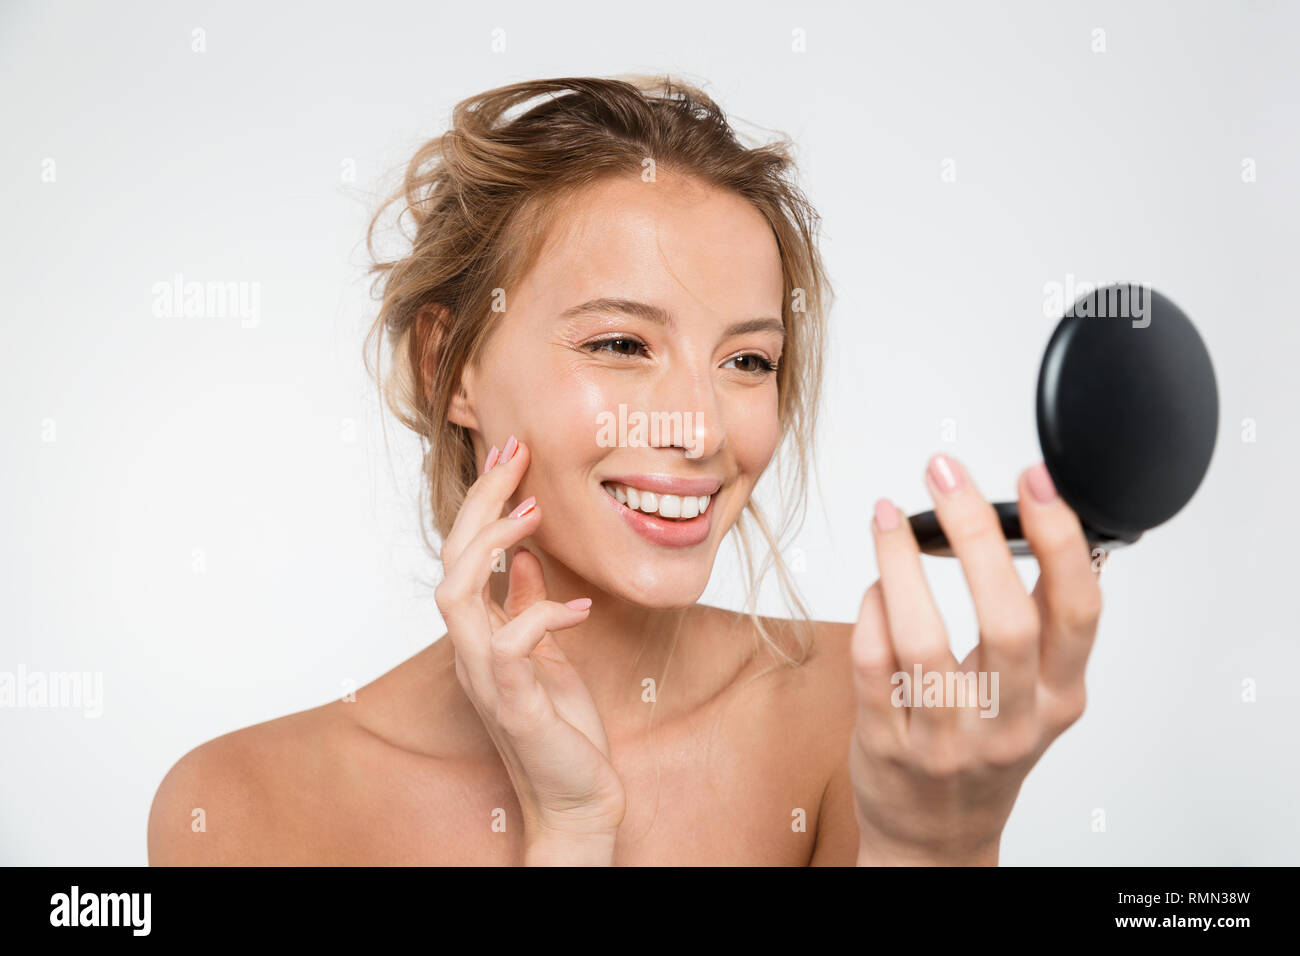 Beauty portrait of an attractive young blonde woman looking at the mirror isolated over white - Stock Image